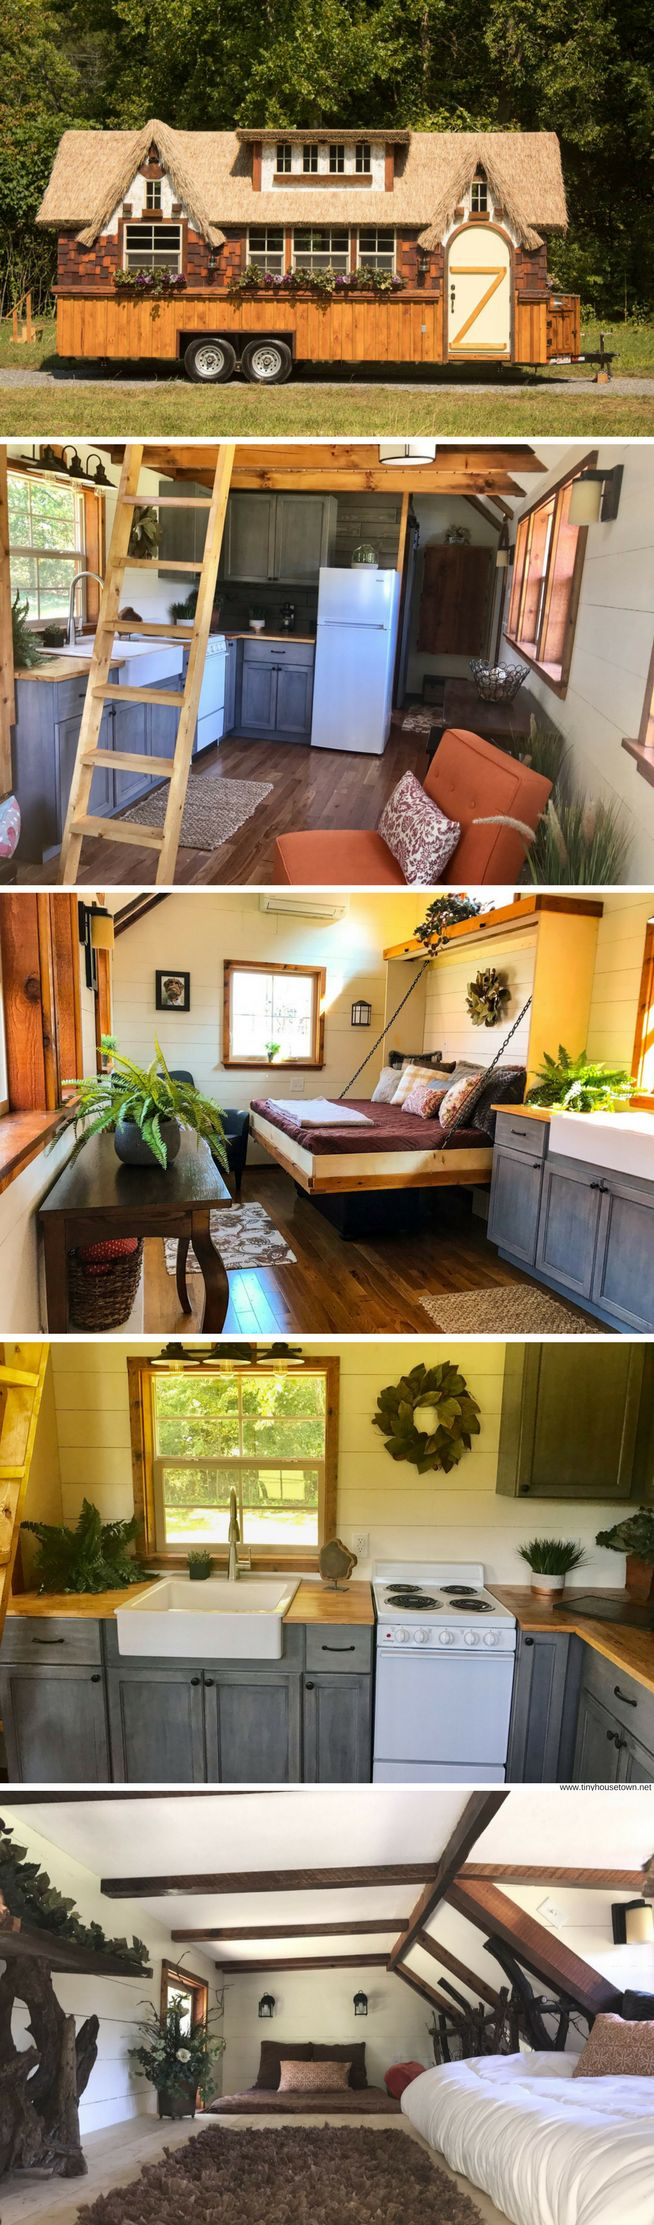 The Highland Home from Incredible Tiny Homes